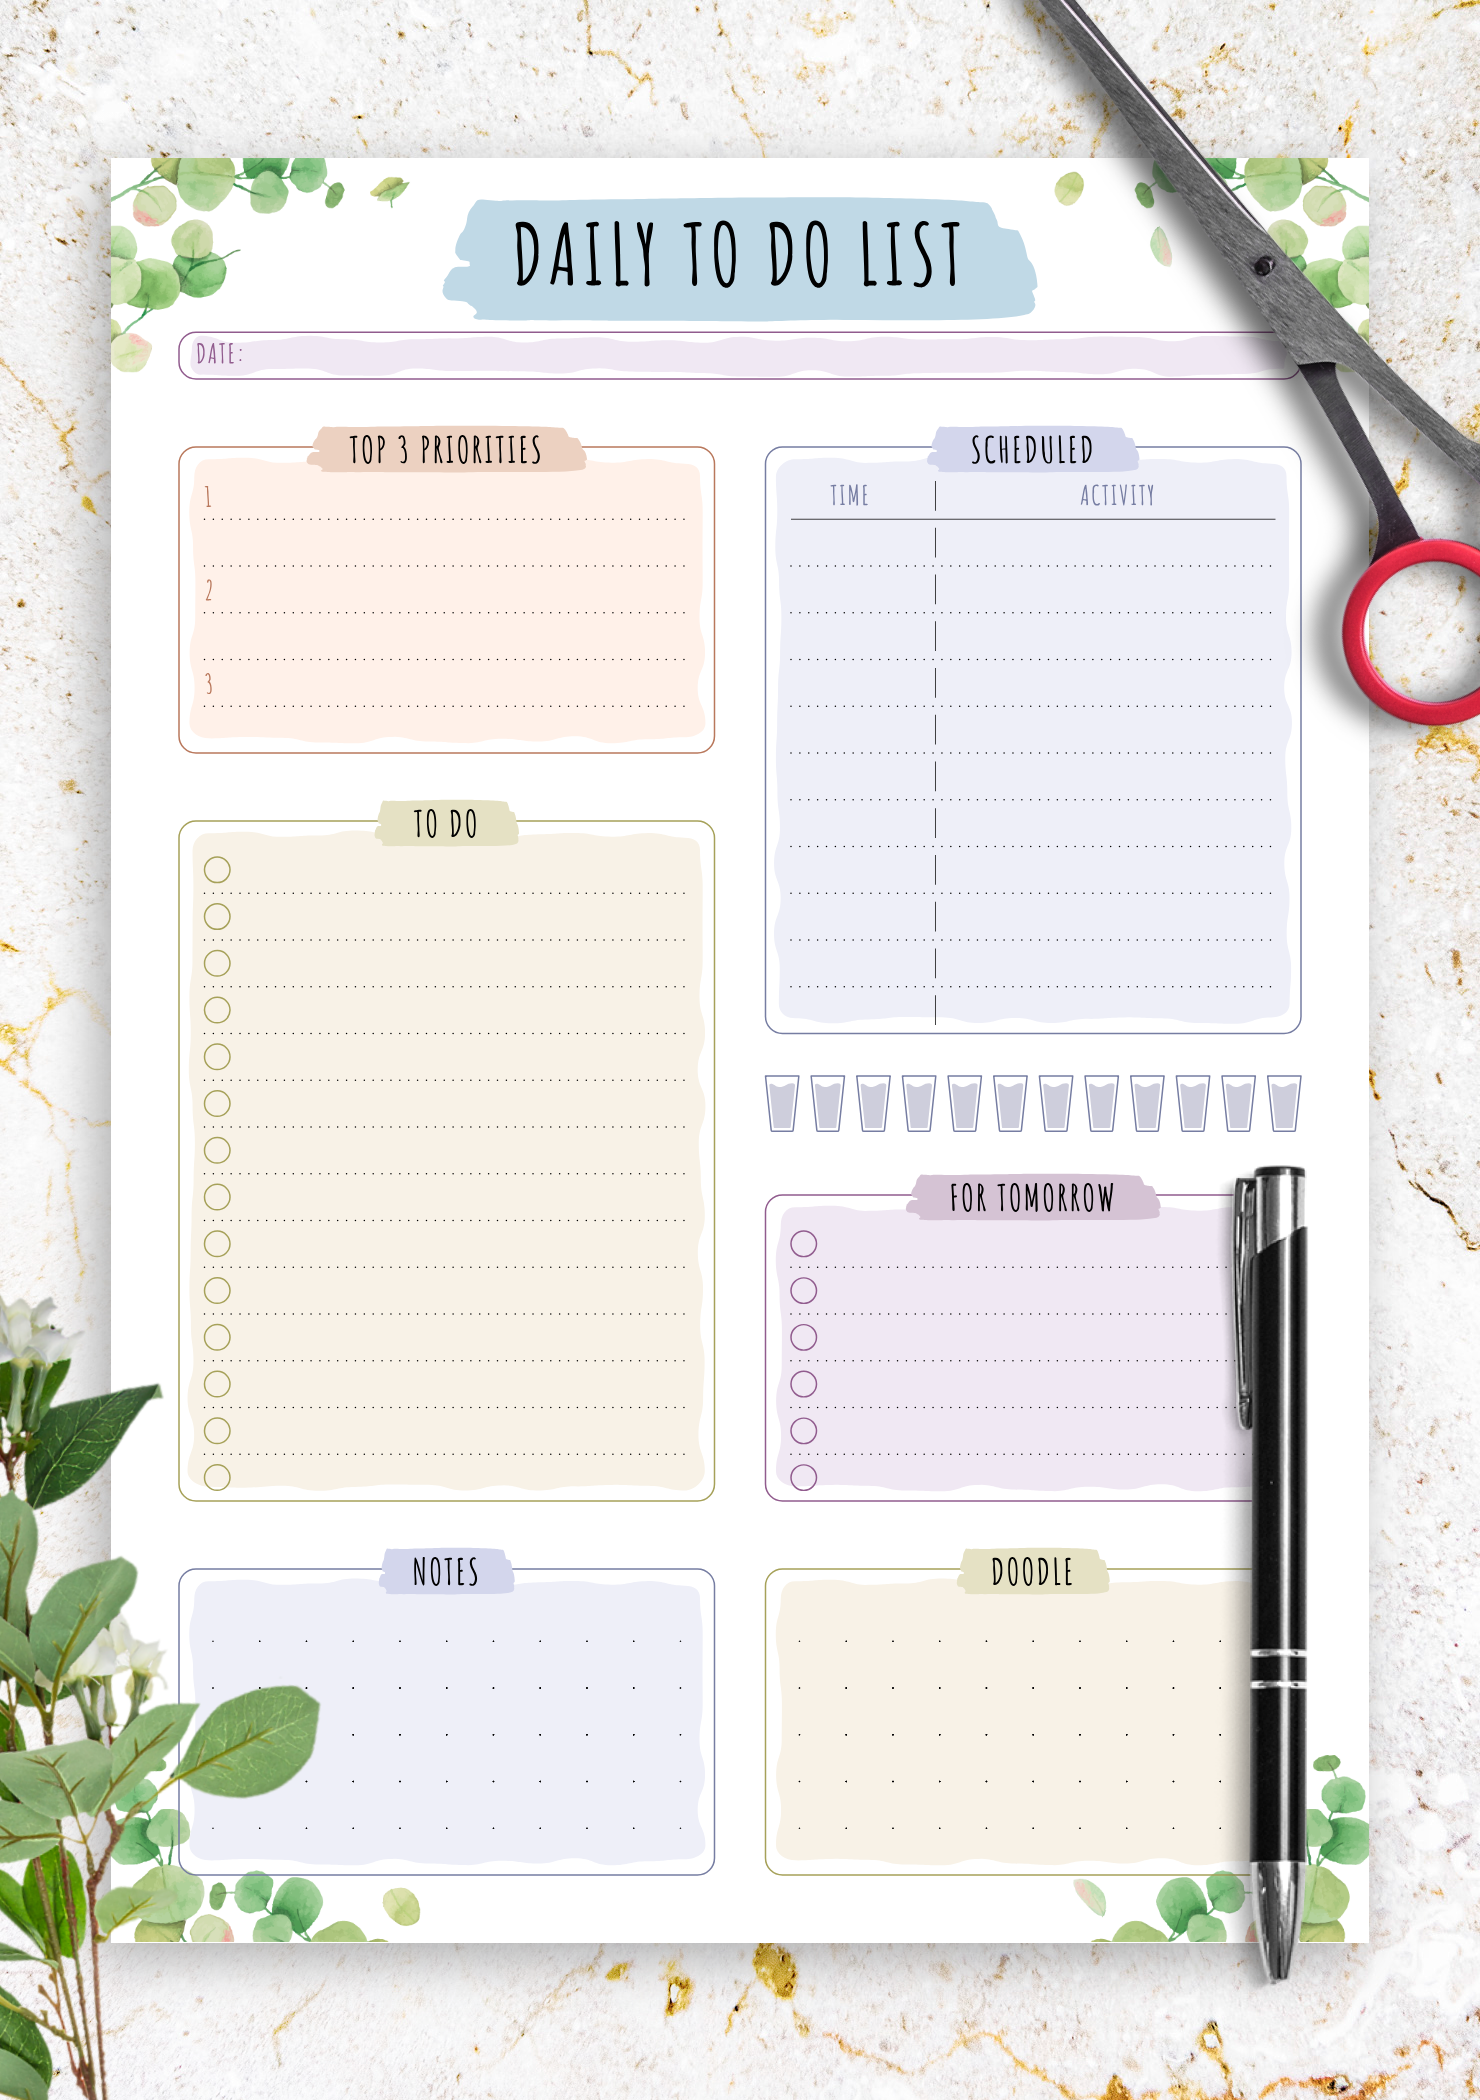 Download Printable Scheduled Daily To Do List - Floral ...